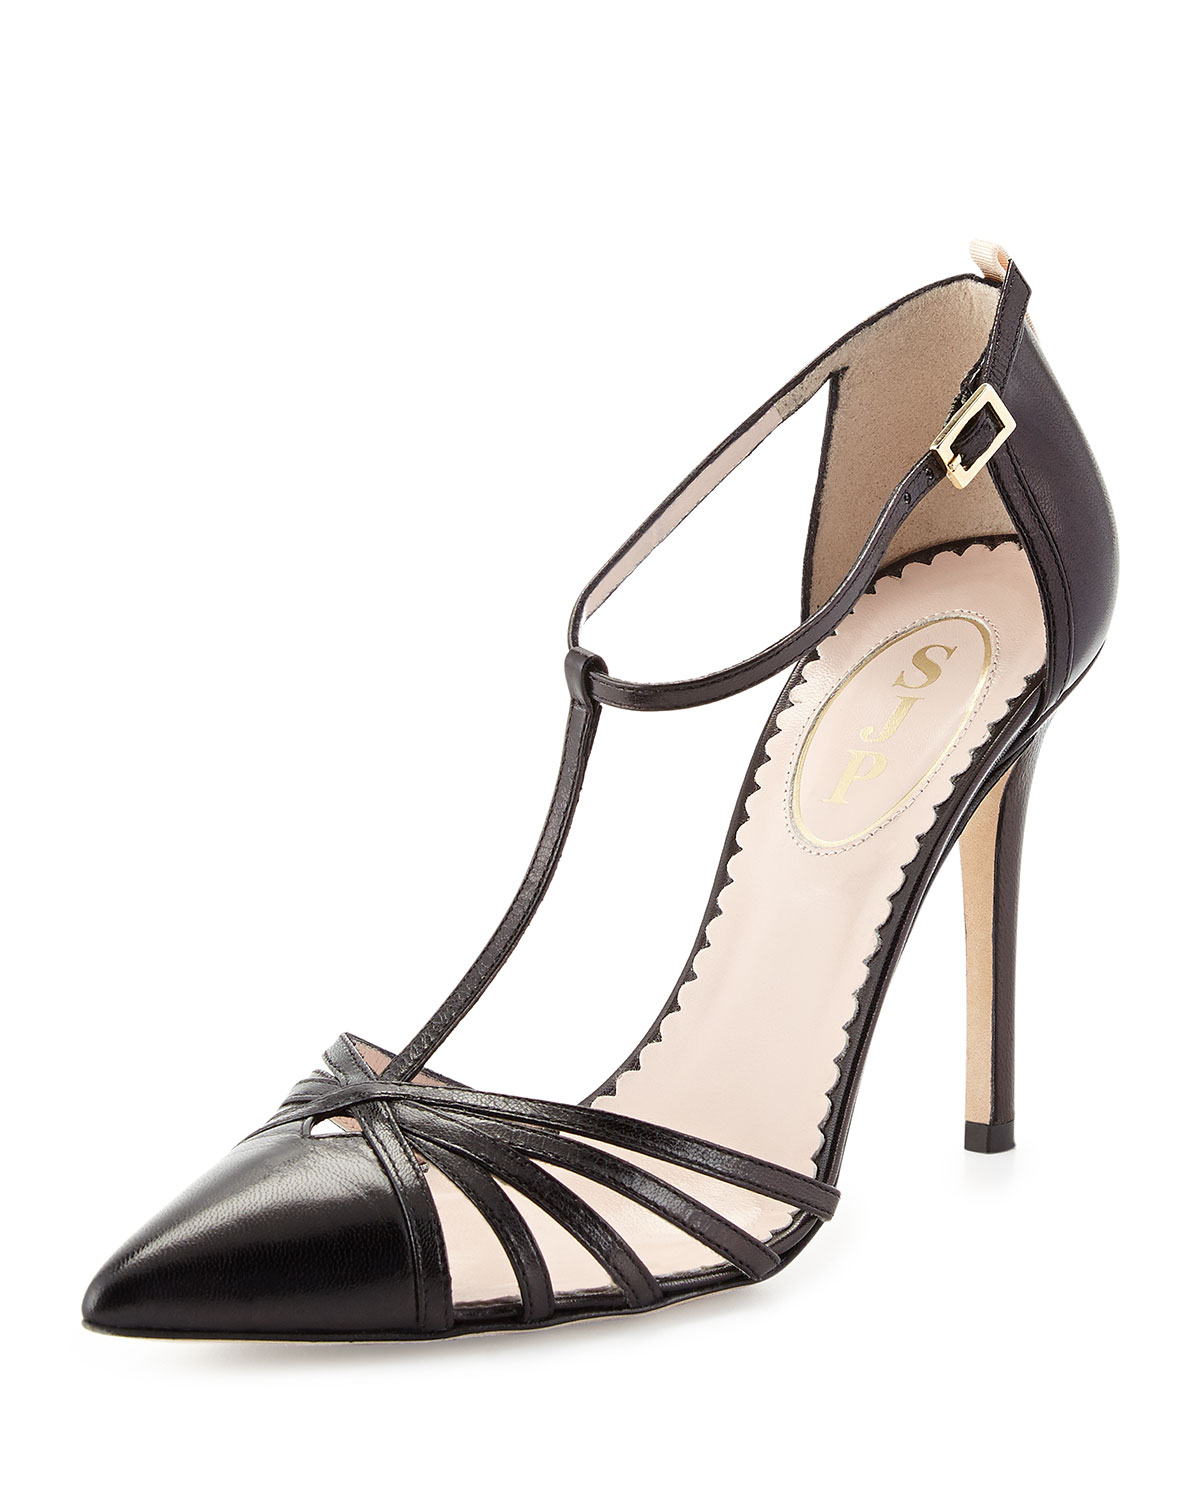 Carrie Leather T-Strap Pump, Black - SJP by Sarah Jessica Parker